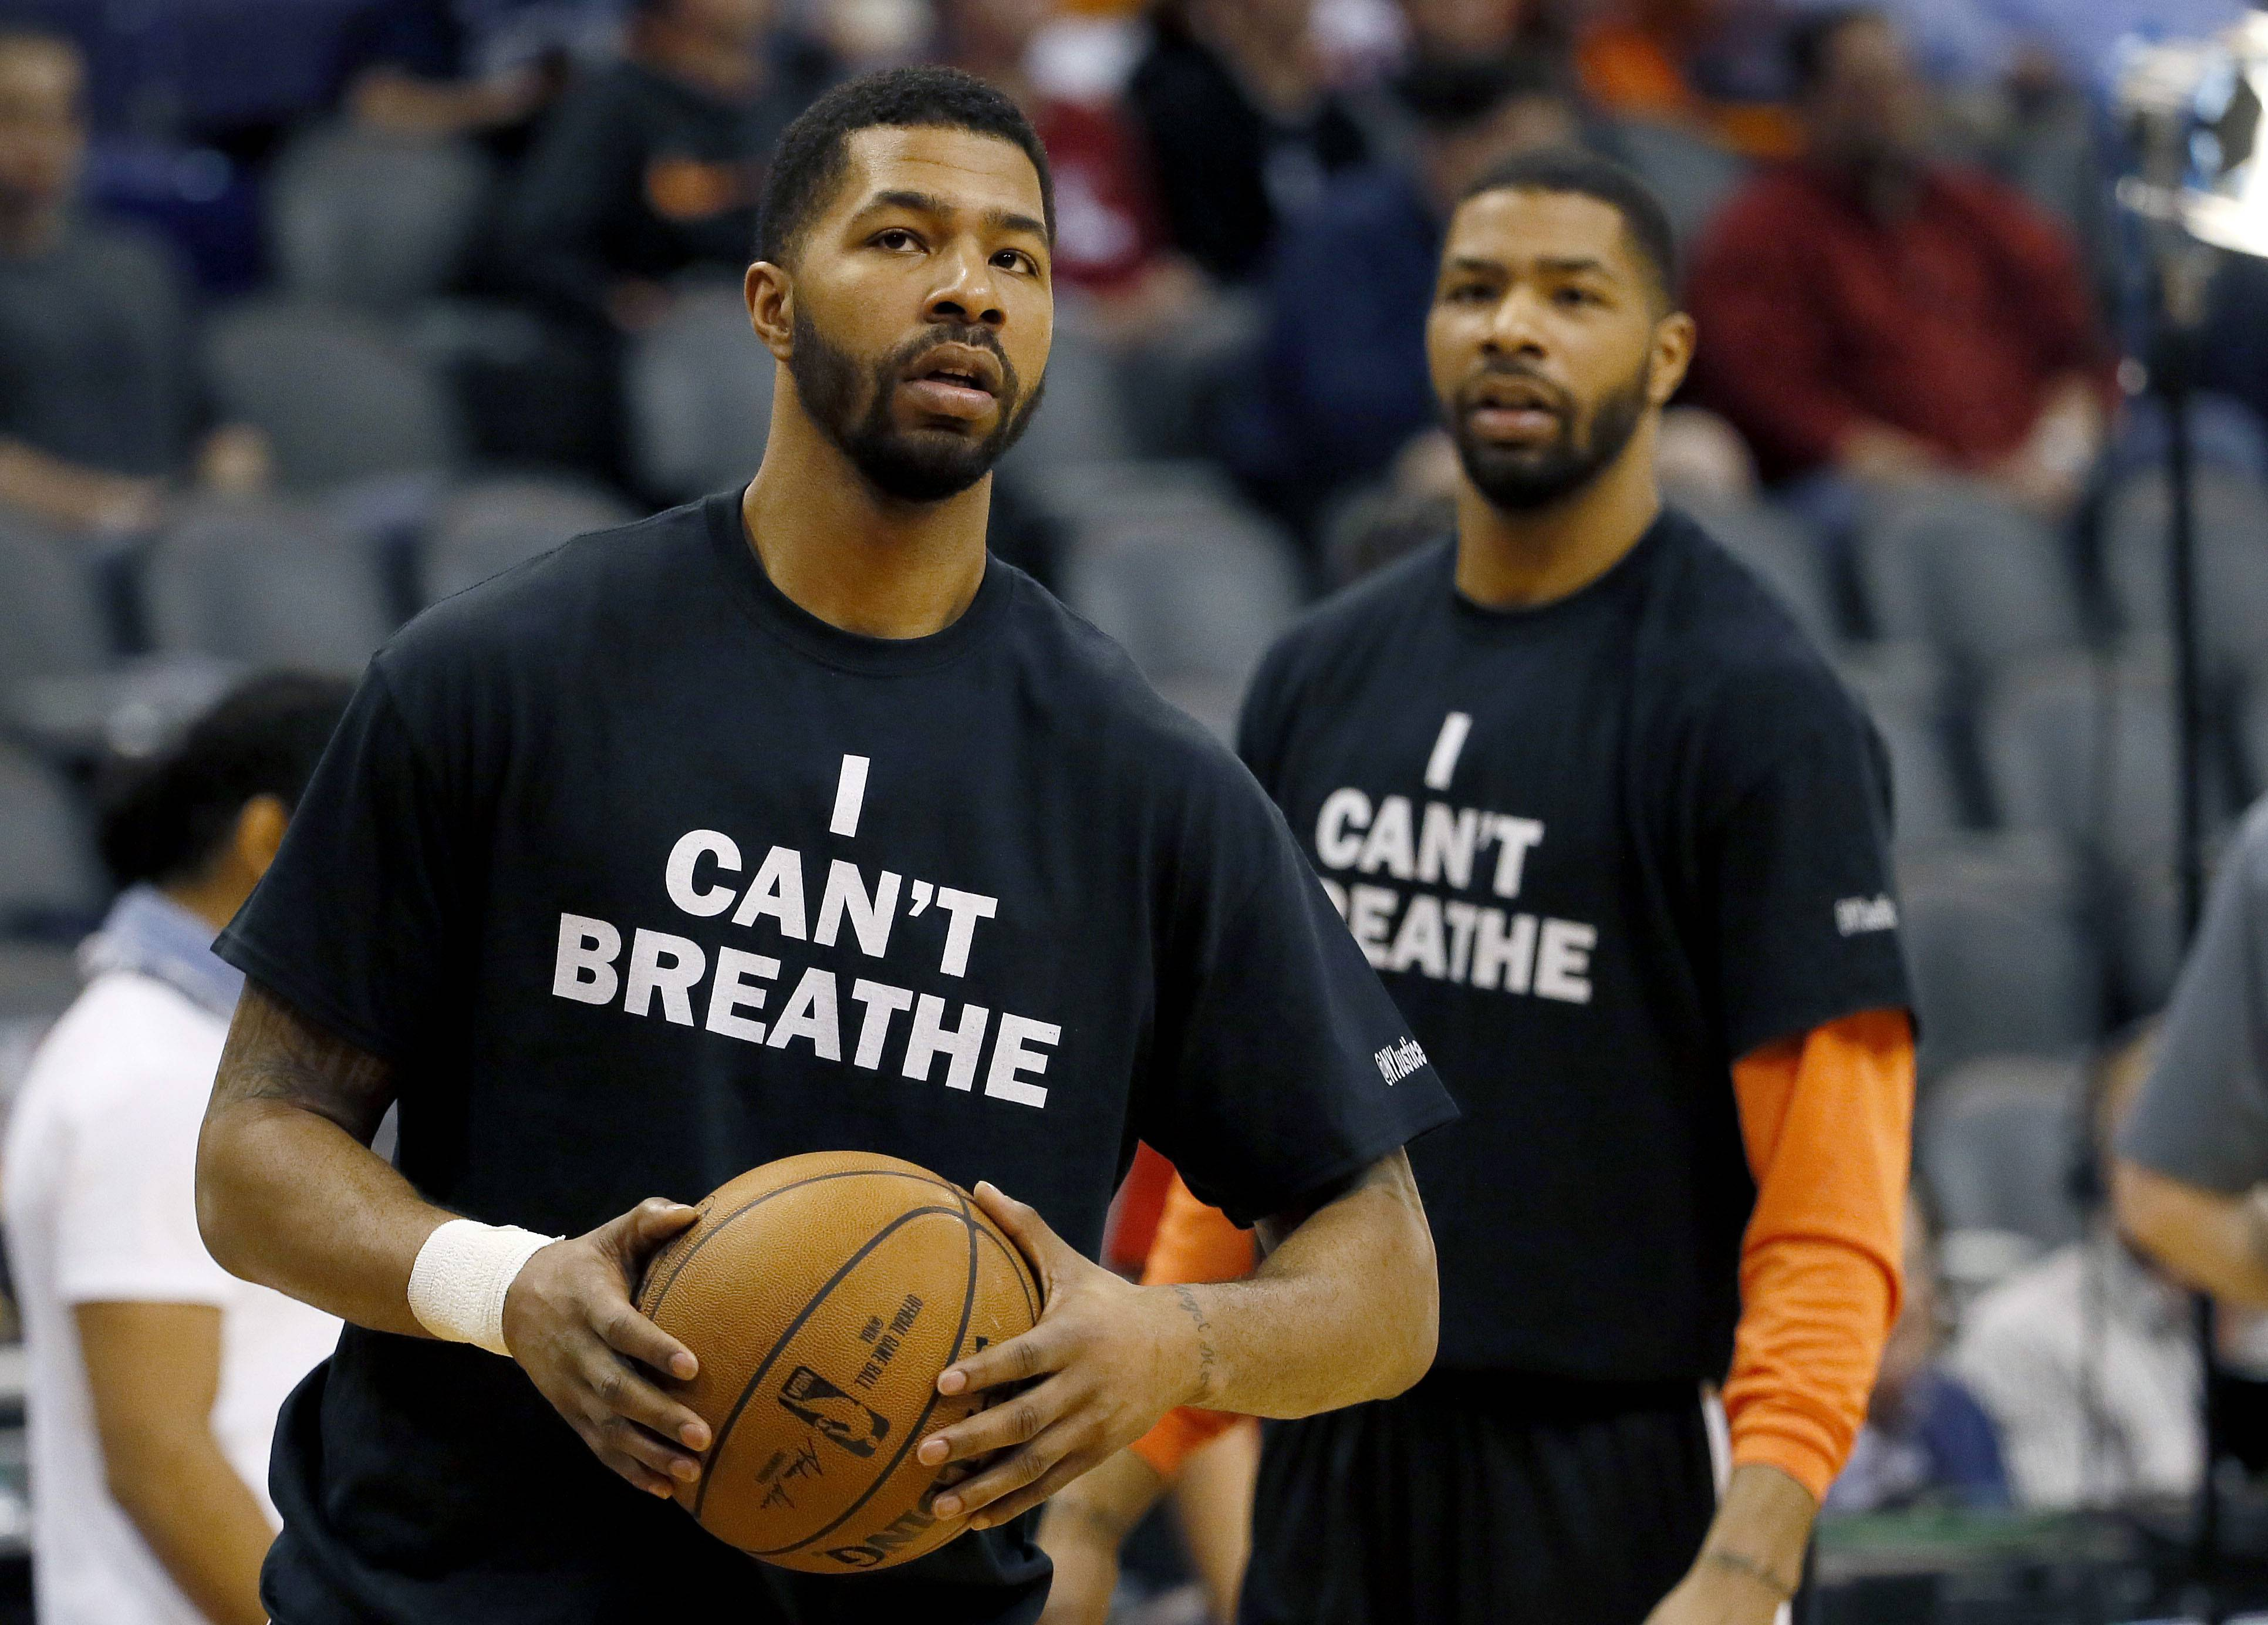 "Phoenix Suns' Markieff Morris, left, and his brother, Marcus Morris, warm up prior to an NBA basketball game against the Milwaukee Bucks, Monday, Dec. 15, 2014, in Phoenix. Several athletes have worn ""I Can't Breathe"" shirts during warm ups in support of the family of Eric Garner, who died July 17 after a police officer placed him in a chokehold when he was being arrested for selling loose, untaxed cigarettes."